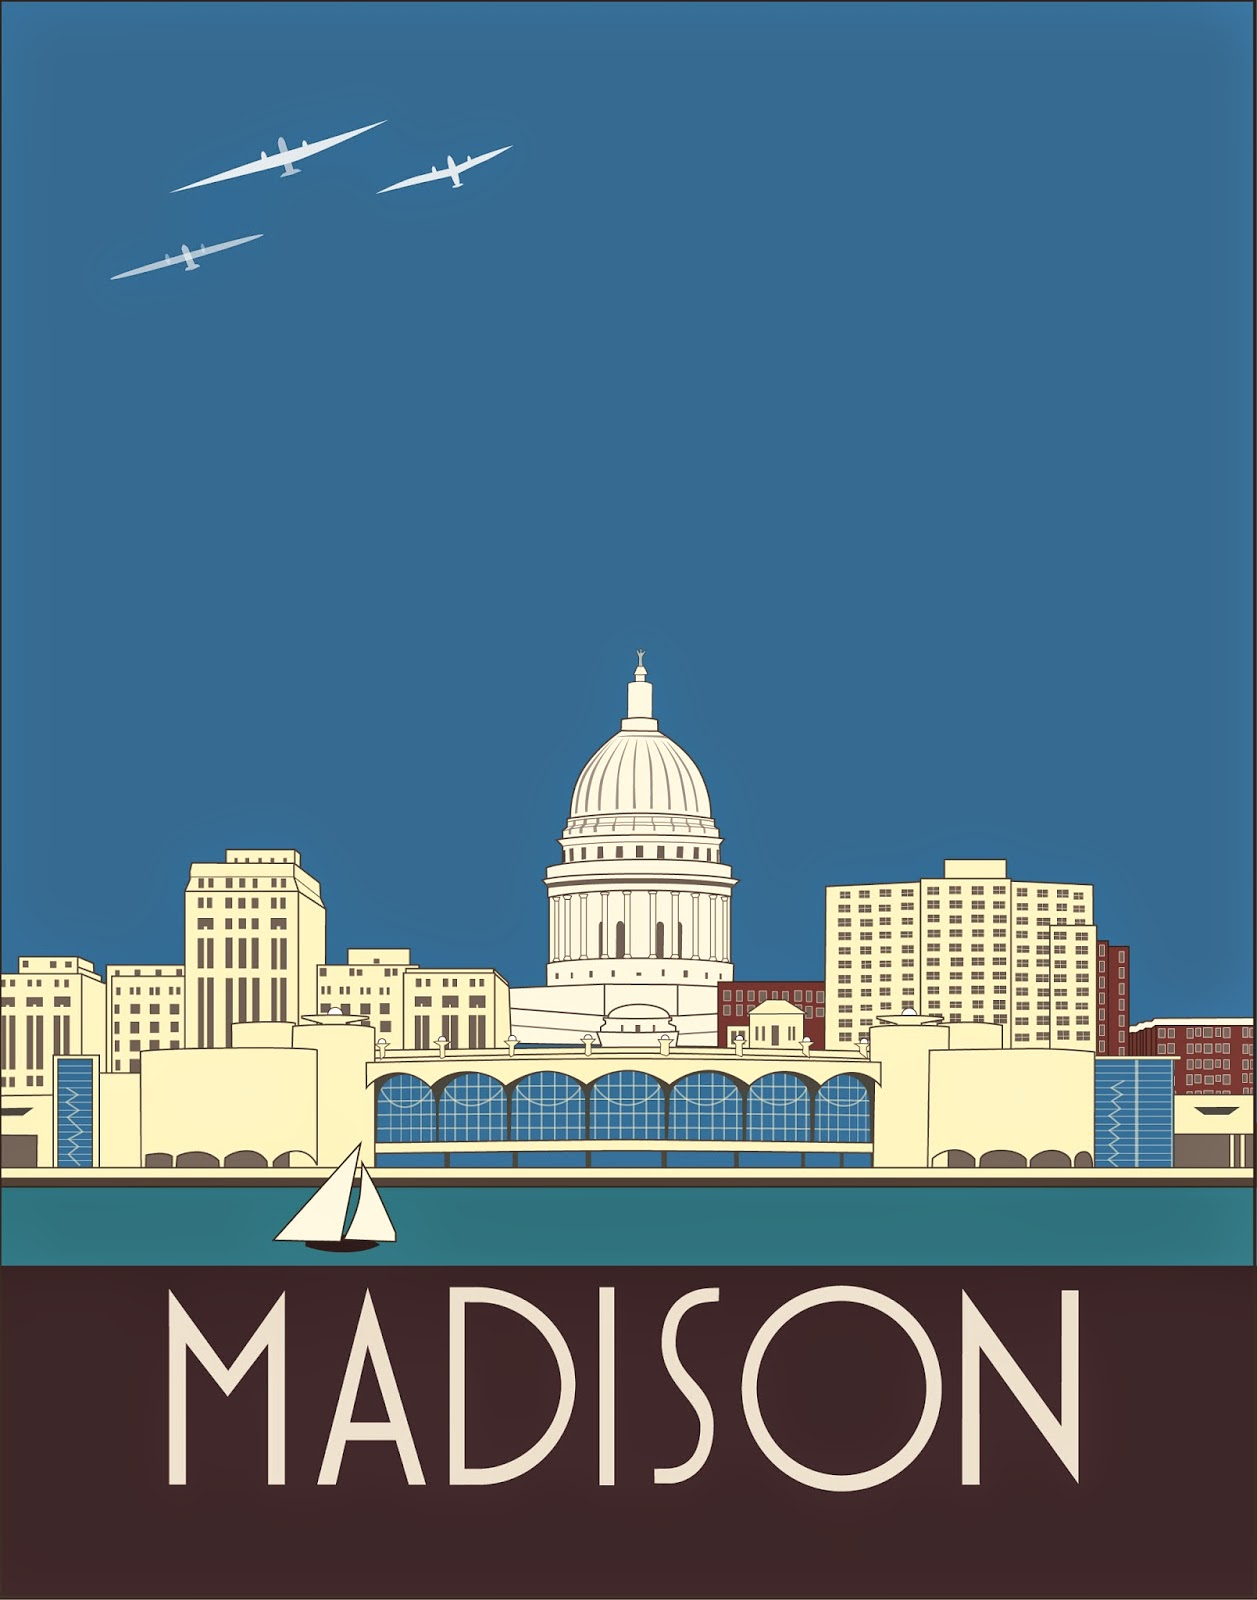 Madison Wisconsin Art Deco Skyline Josef Spalenka adobe illustrator